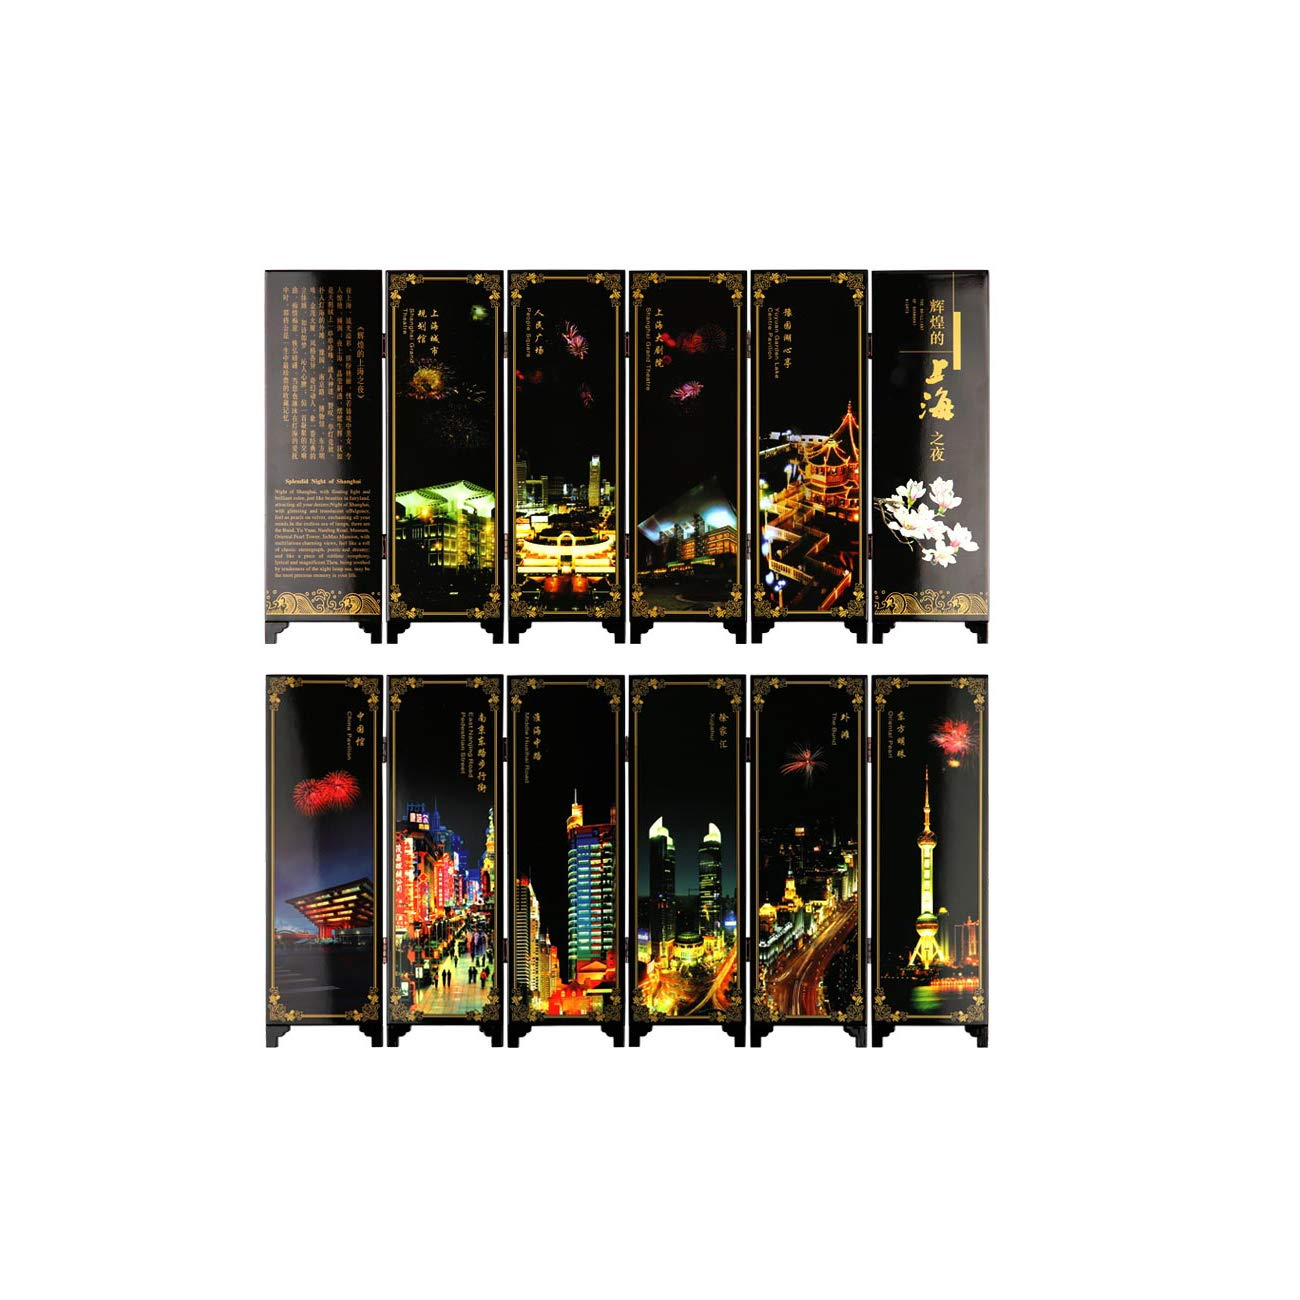 Mini Folding Screen Table Screen China antique Shanghai lacquer personality ornament vintage wood decoration room divider